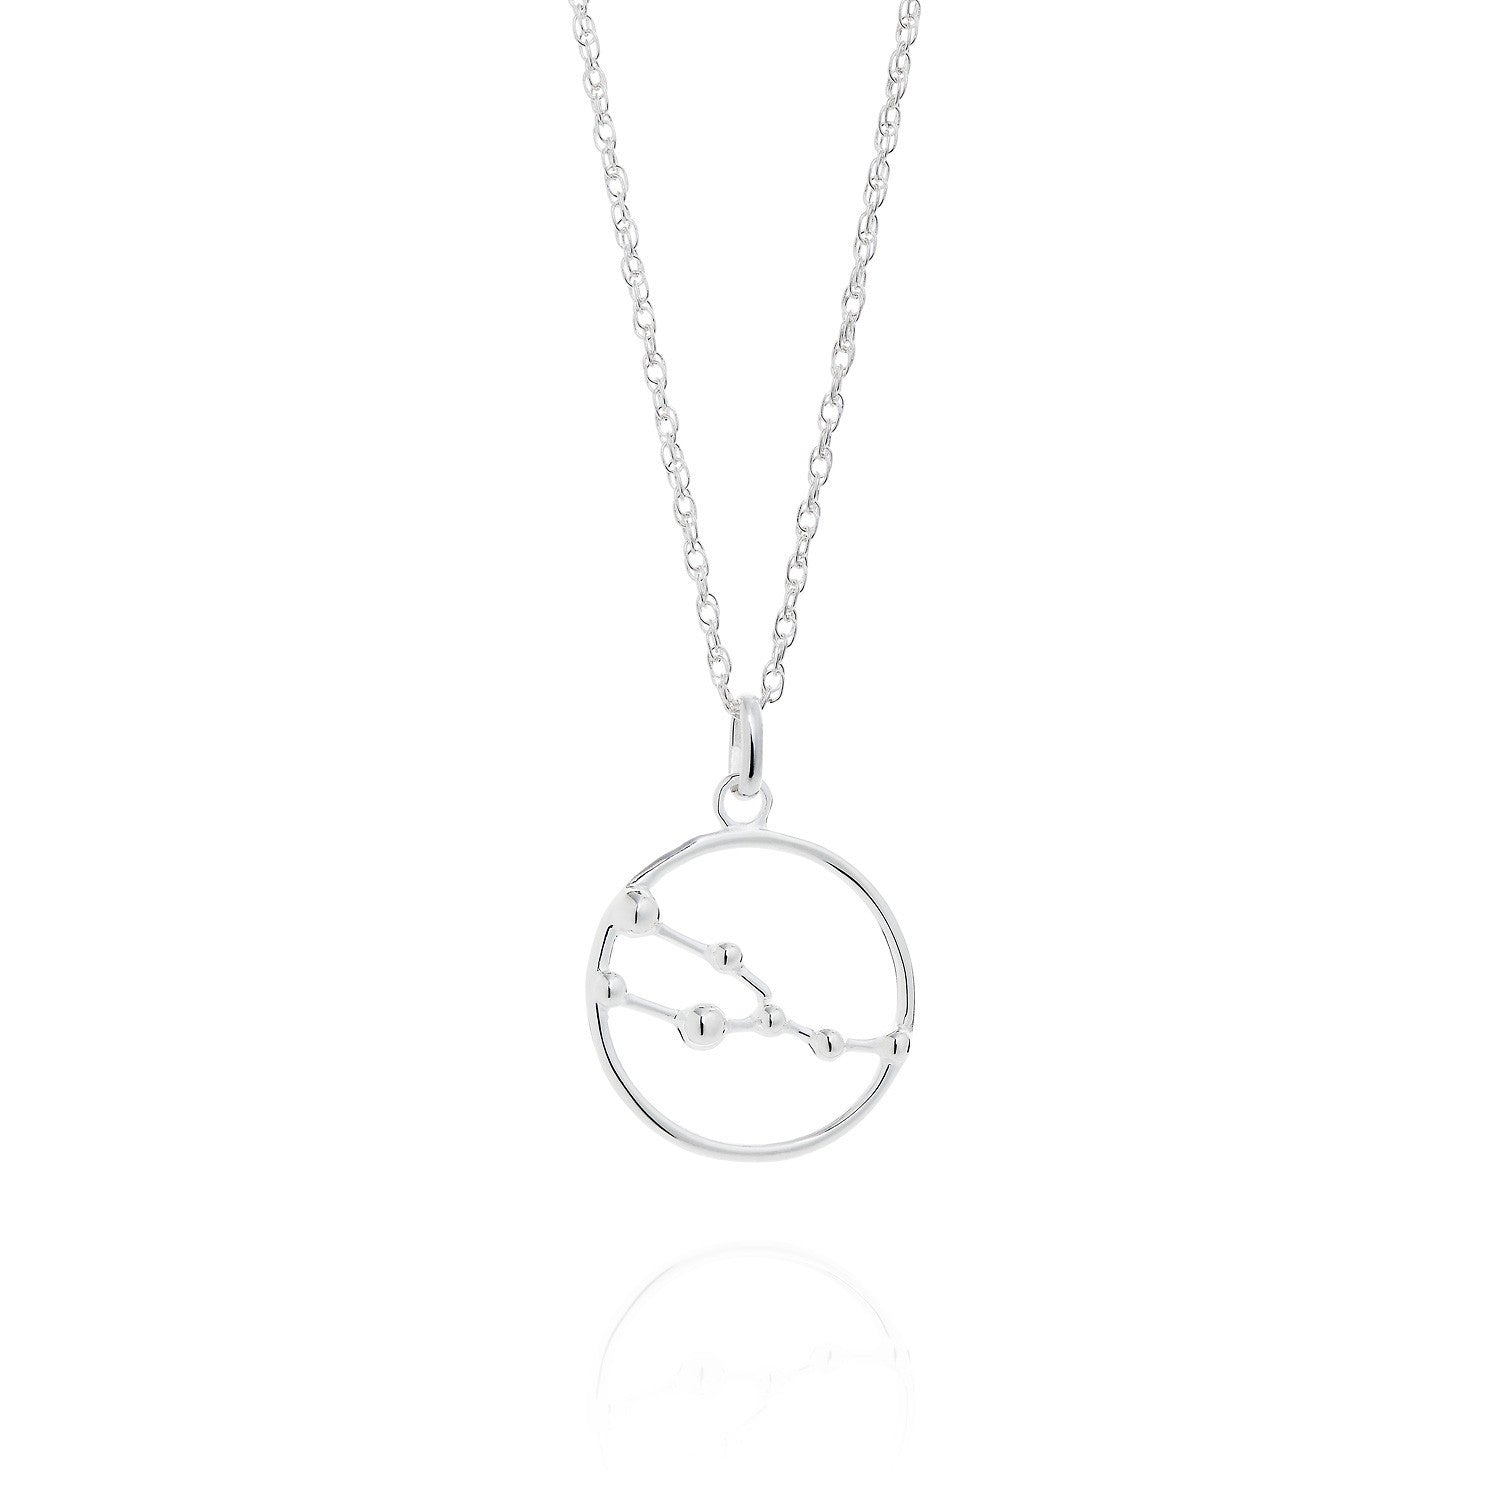 Taurus star sign astrology Necklace